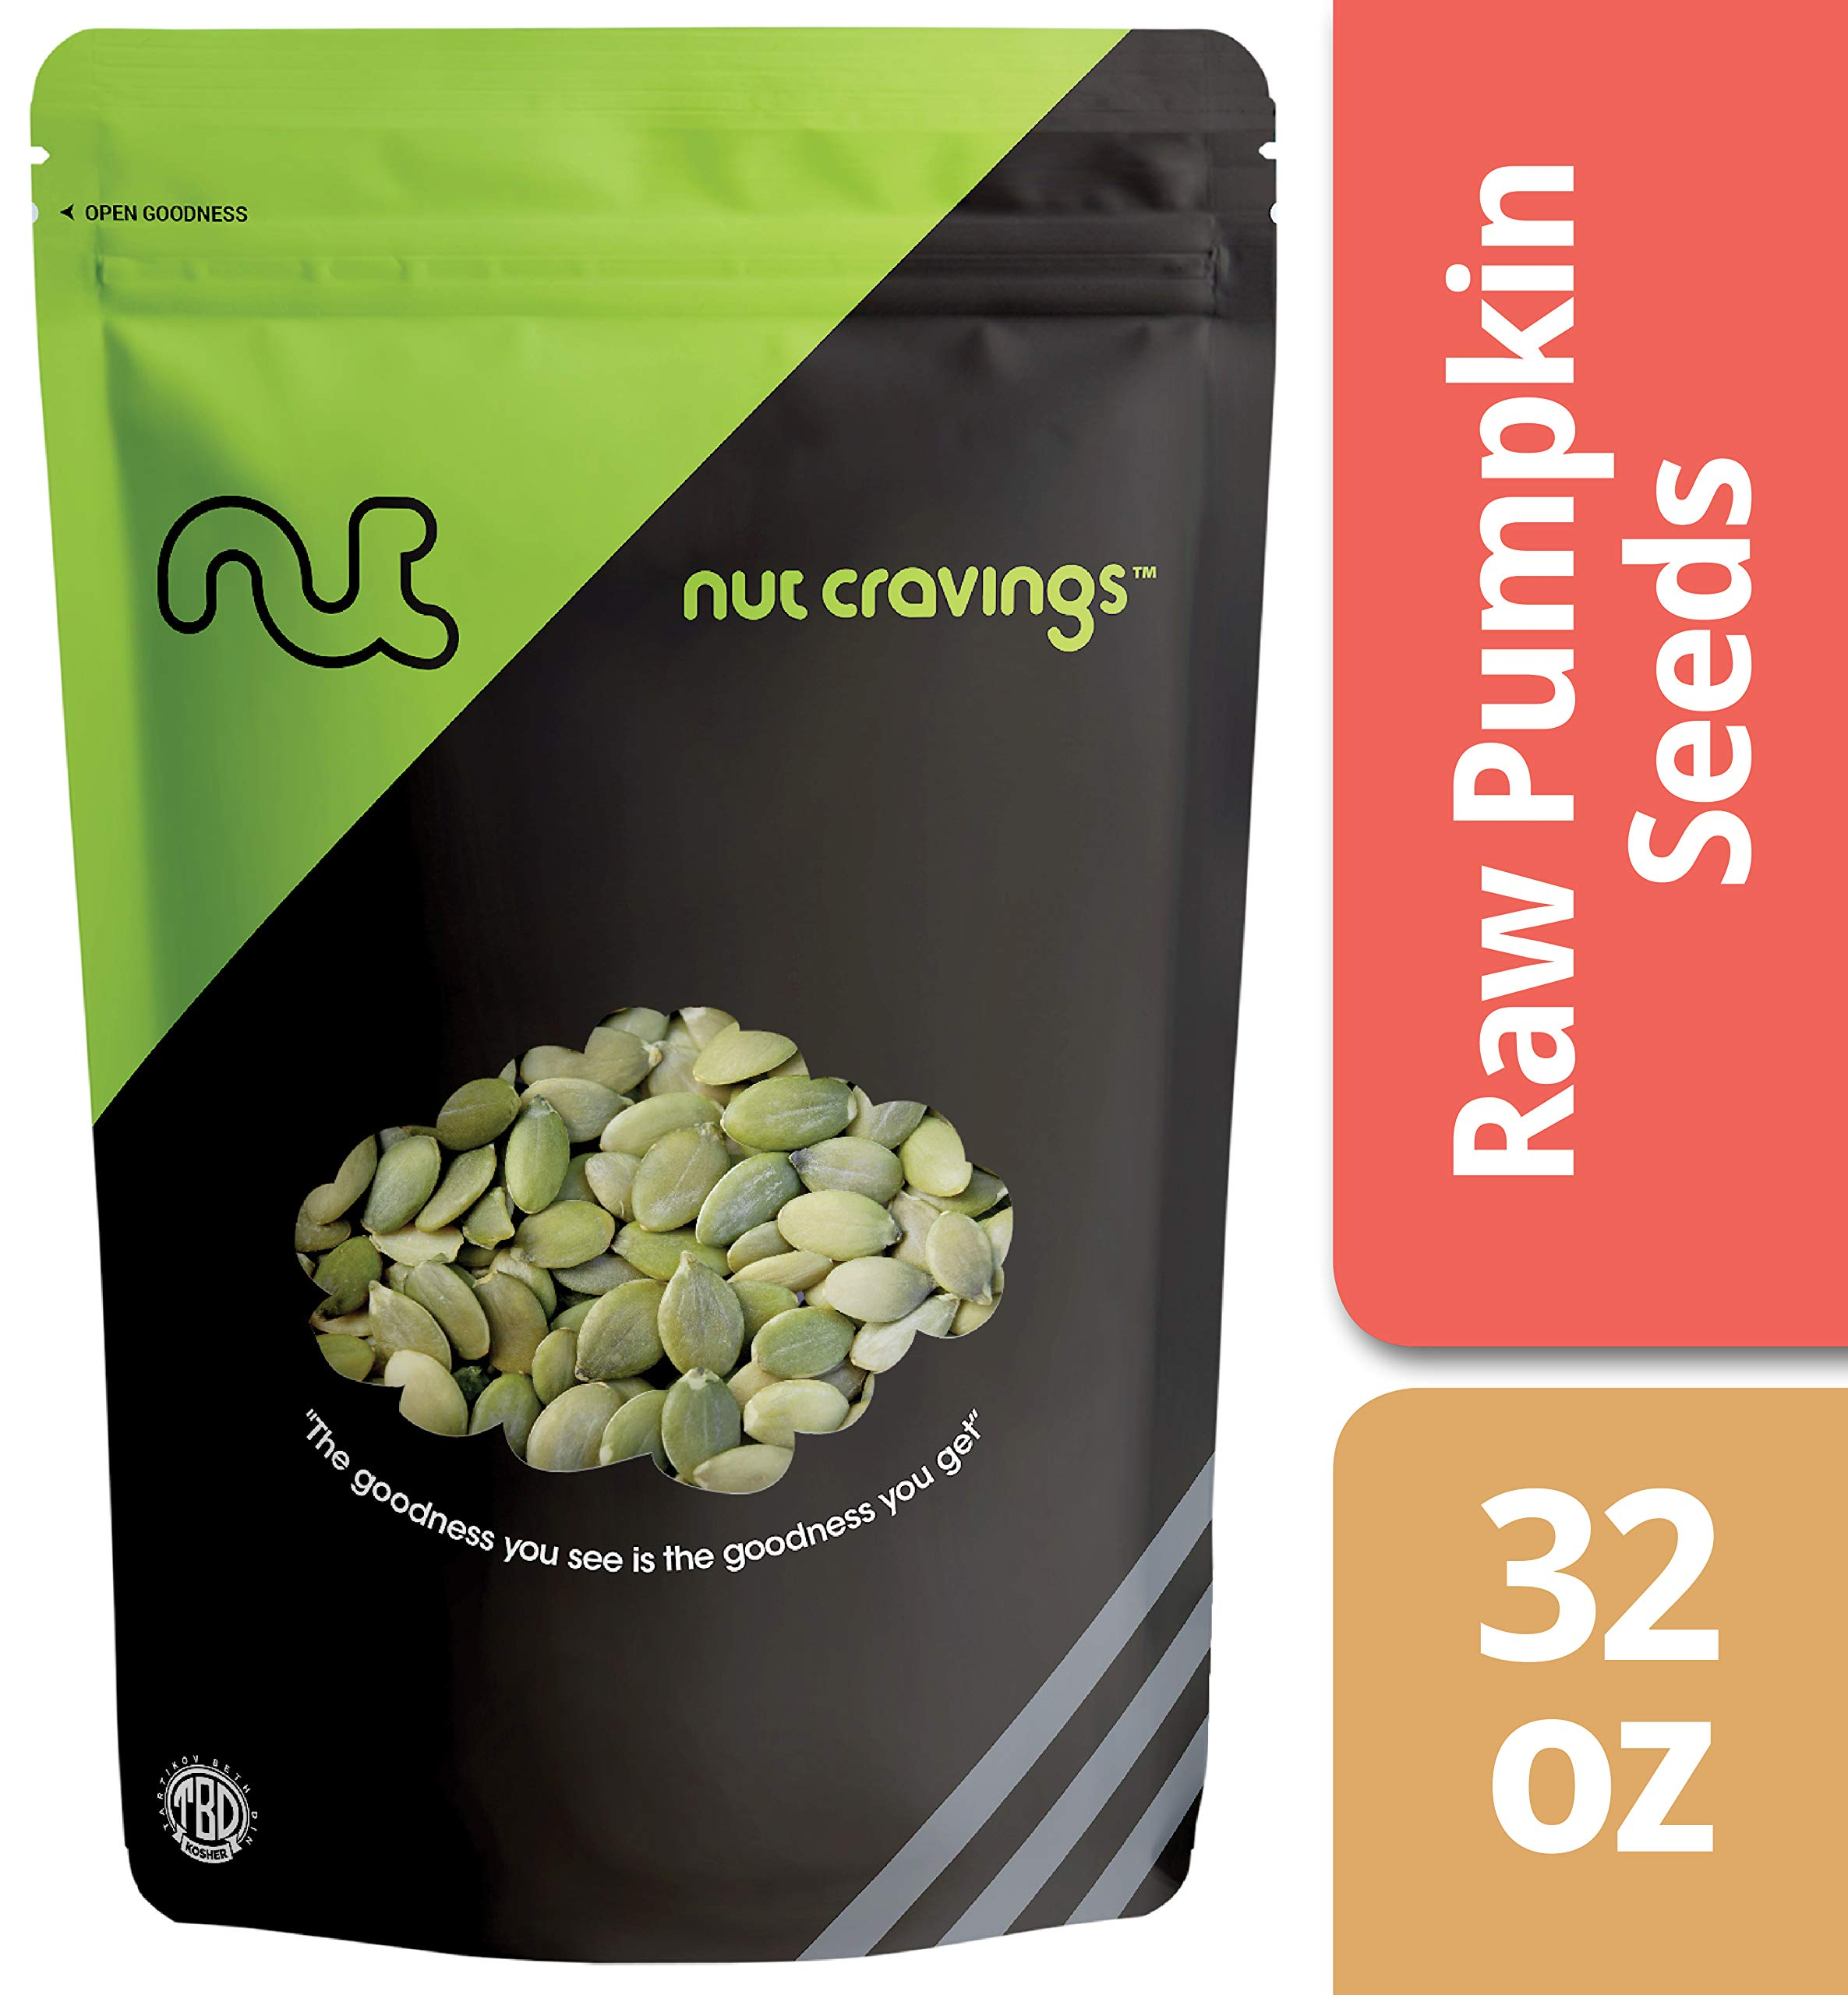 Nut Cravings - Raw Organic Pumpkin Seeds (2 Pounds) - Raw Pepitas With No Shell - 32 Ounce by Nut Cravings